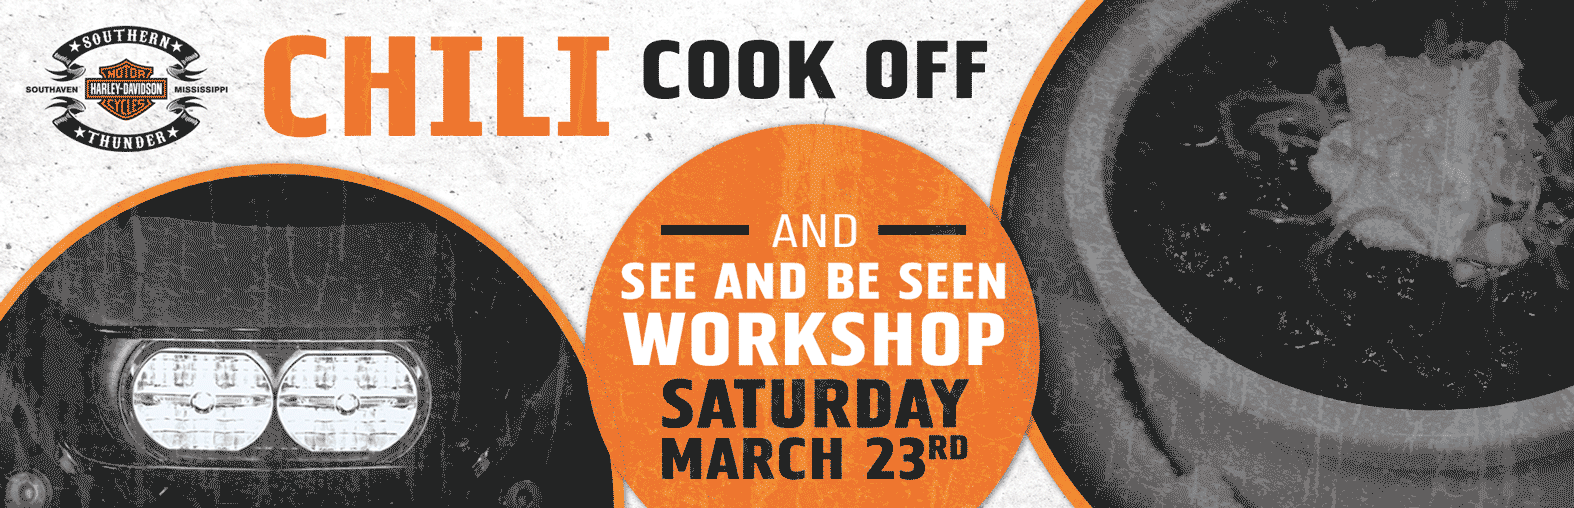 Chili Cook Off & See And Be Seen Workshop